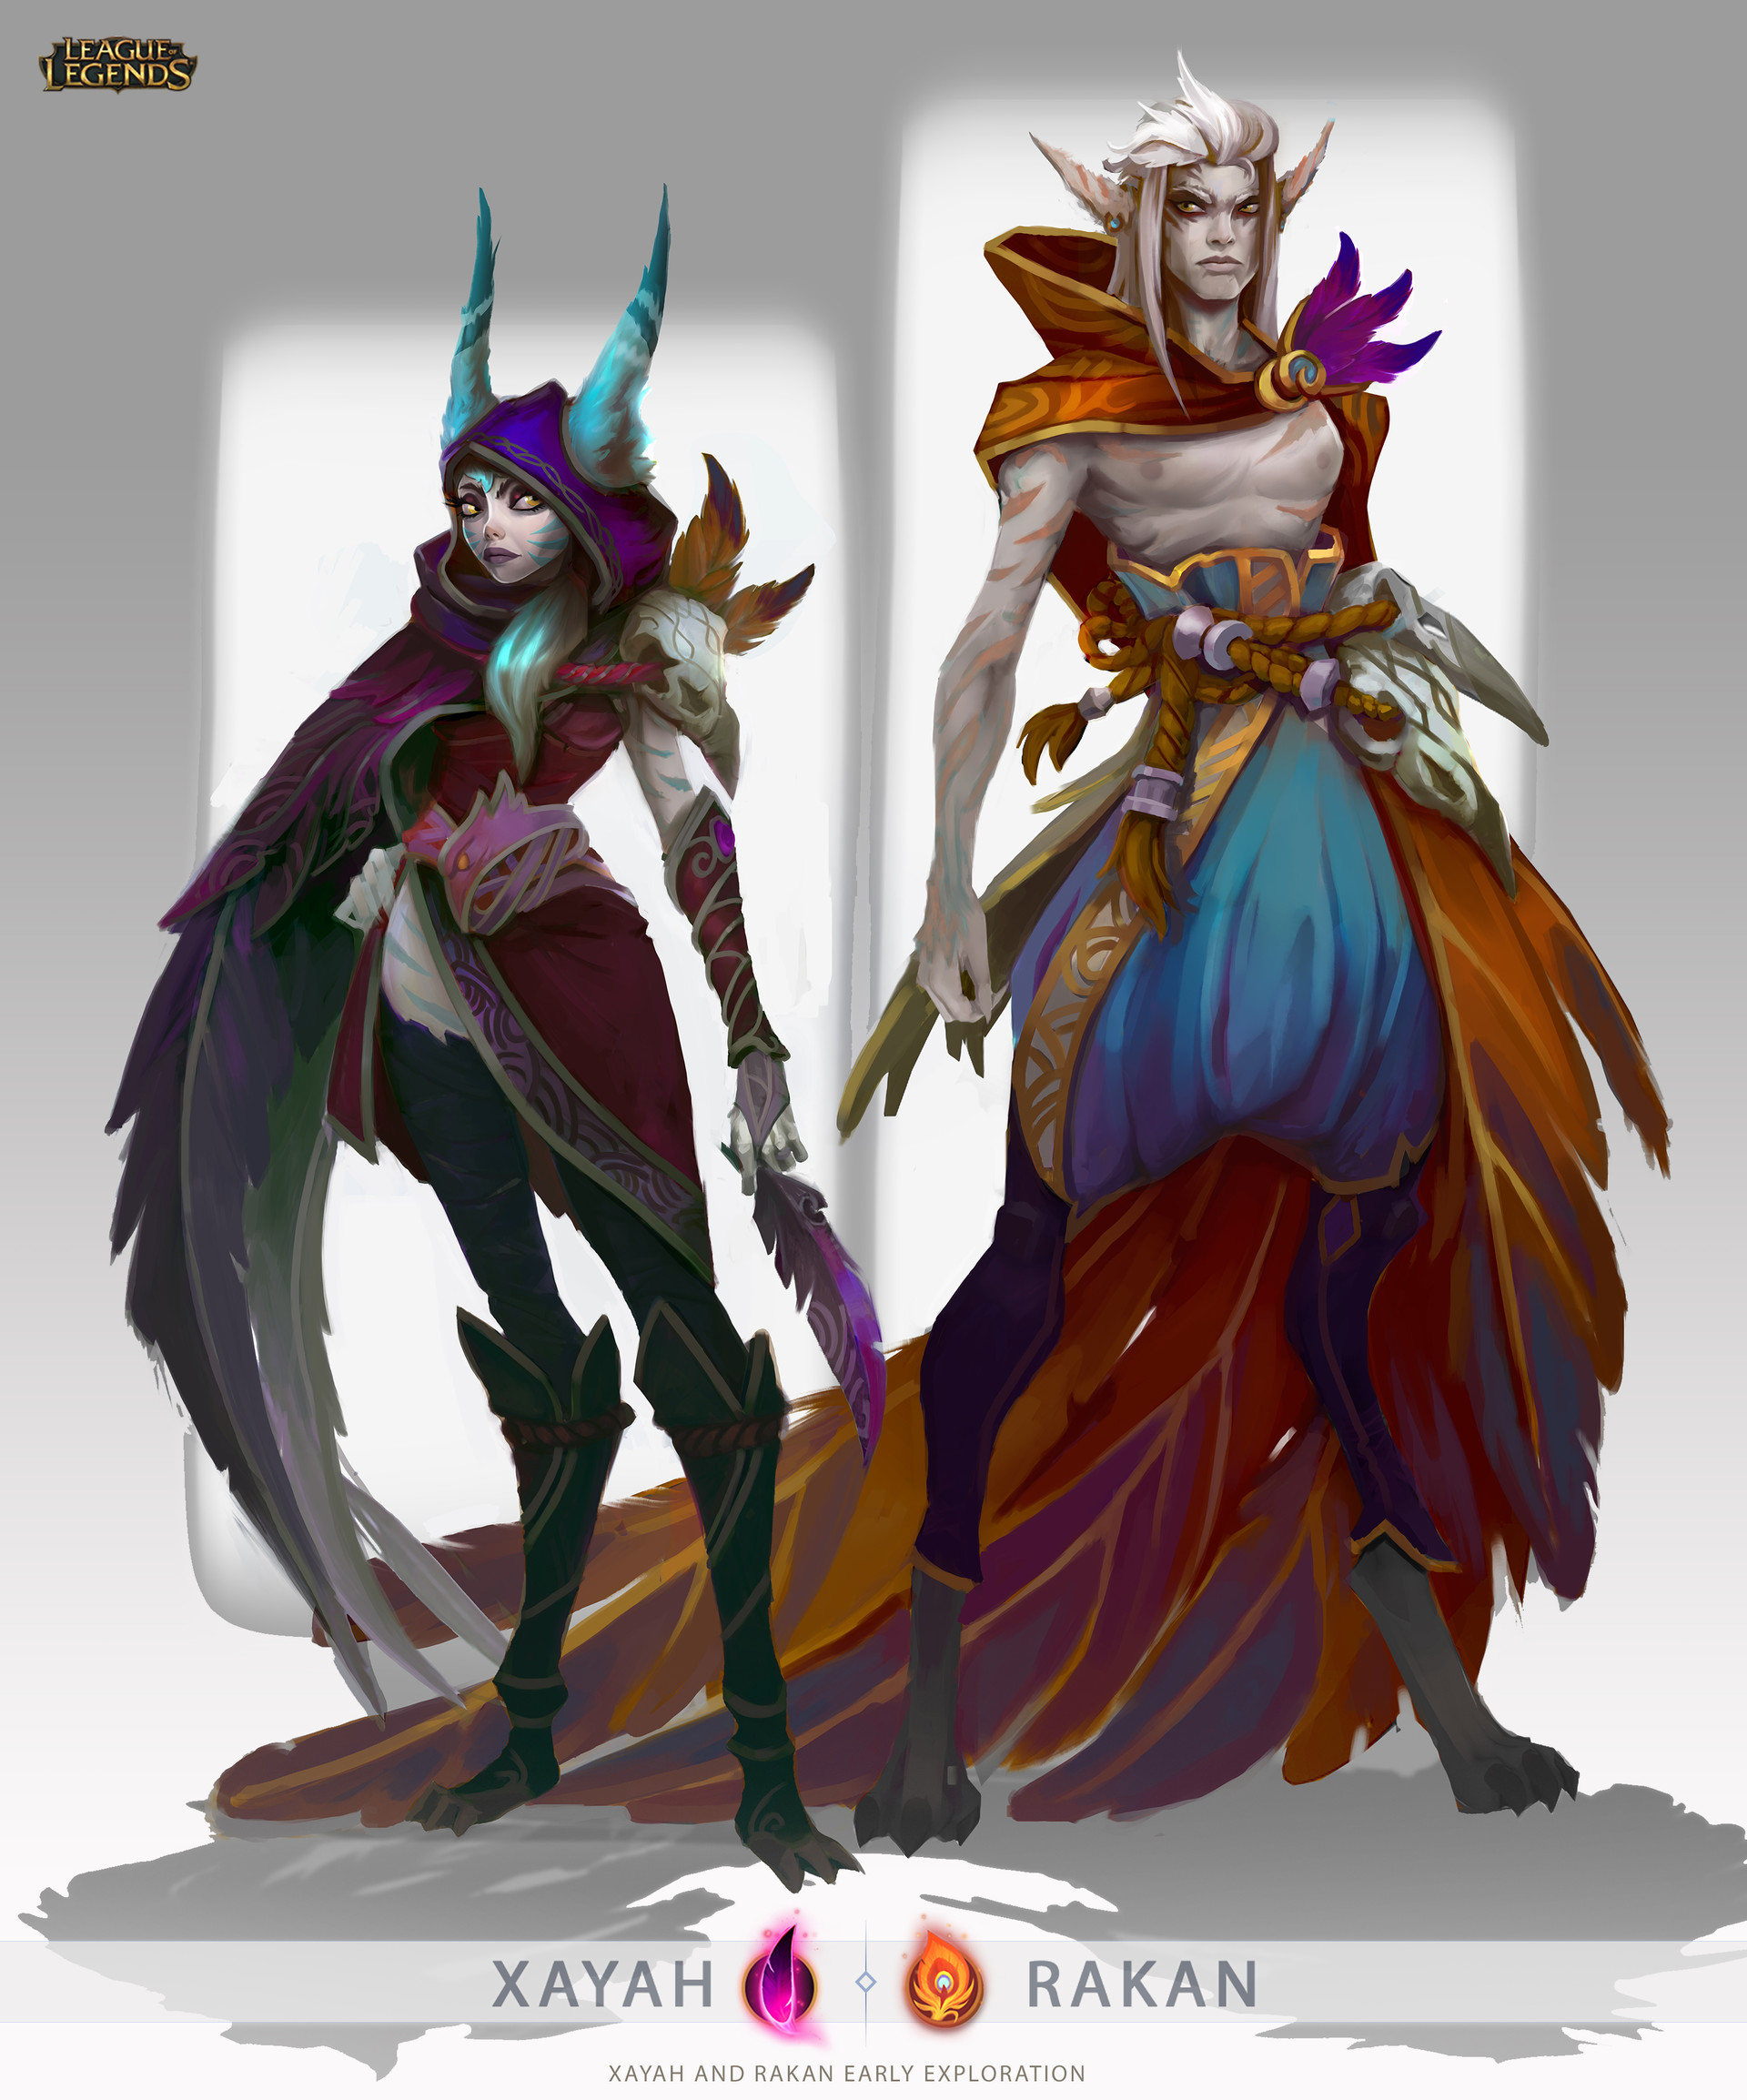 Xayah and Rakan early explorations